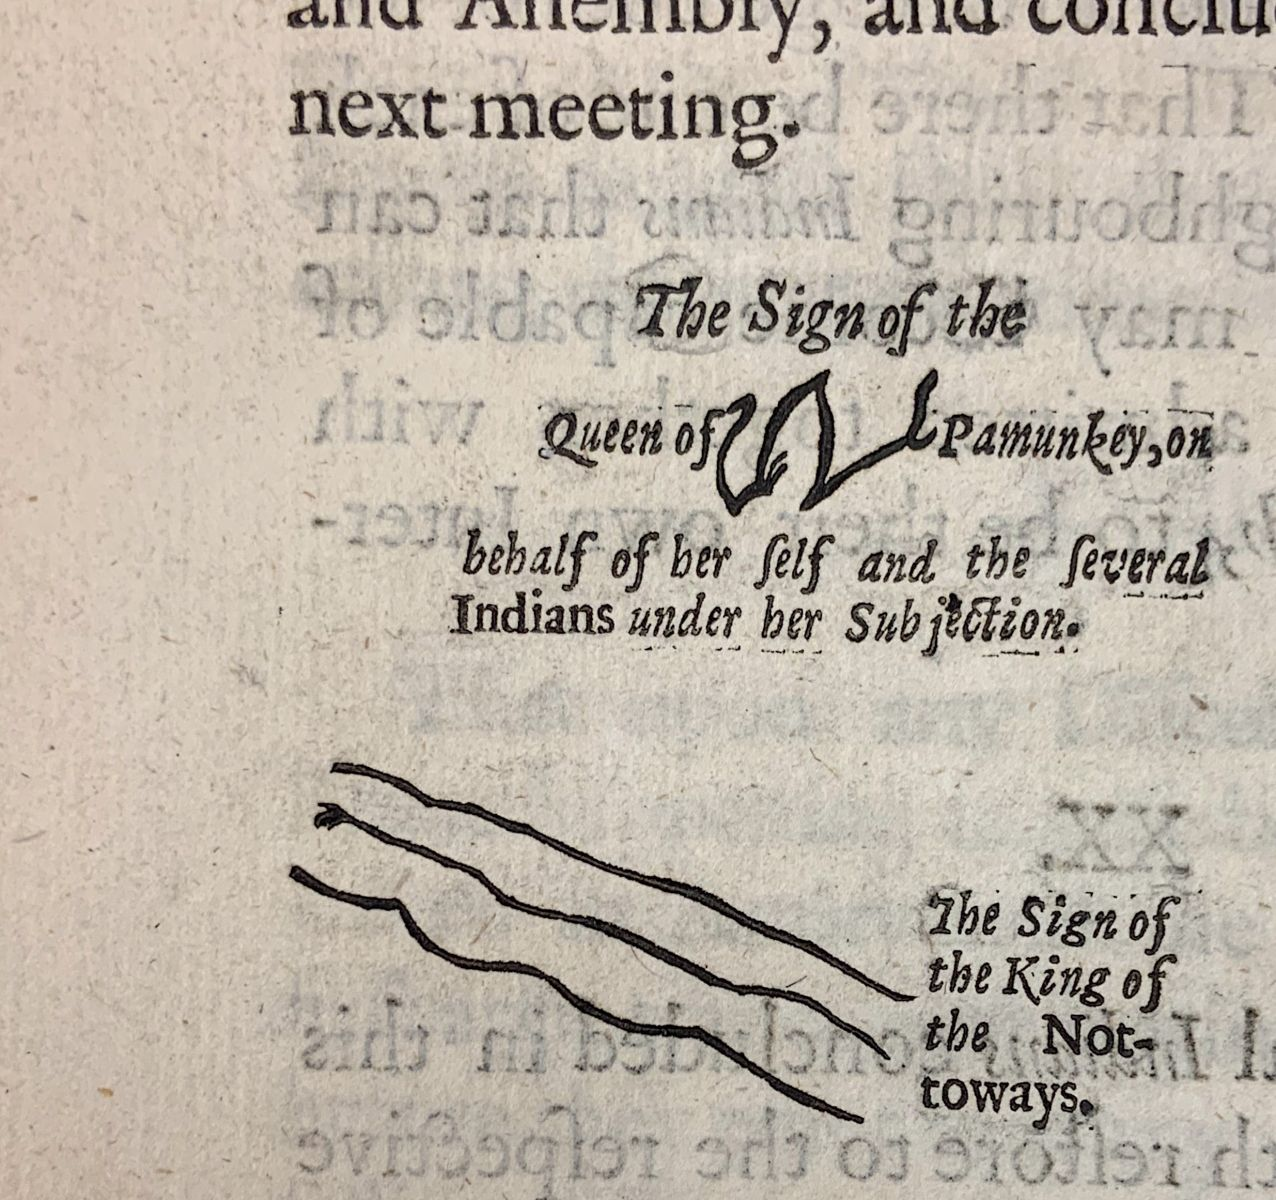 A close-up of the signature of the Queen of Pamunkey, a shape that looks like a bold 'W' in a tree-branch or river-like formation. Sign of the King of Nottoways: three wavy parallel lines